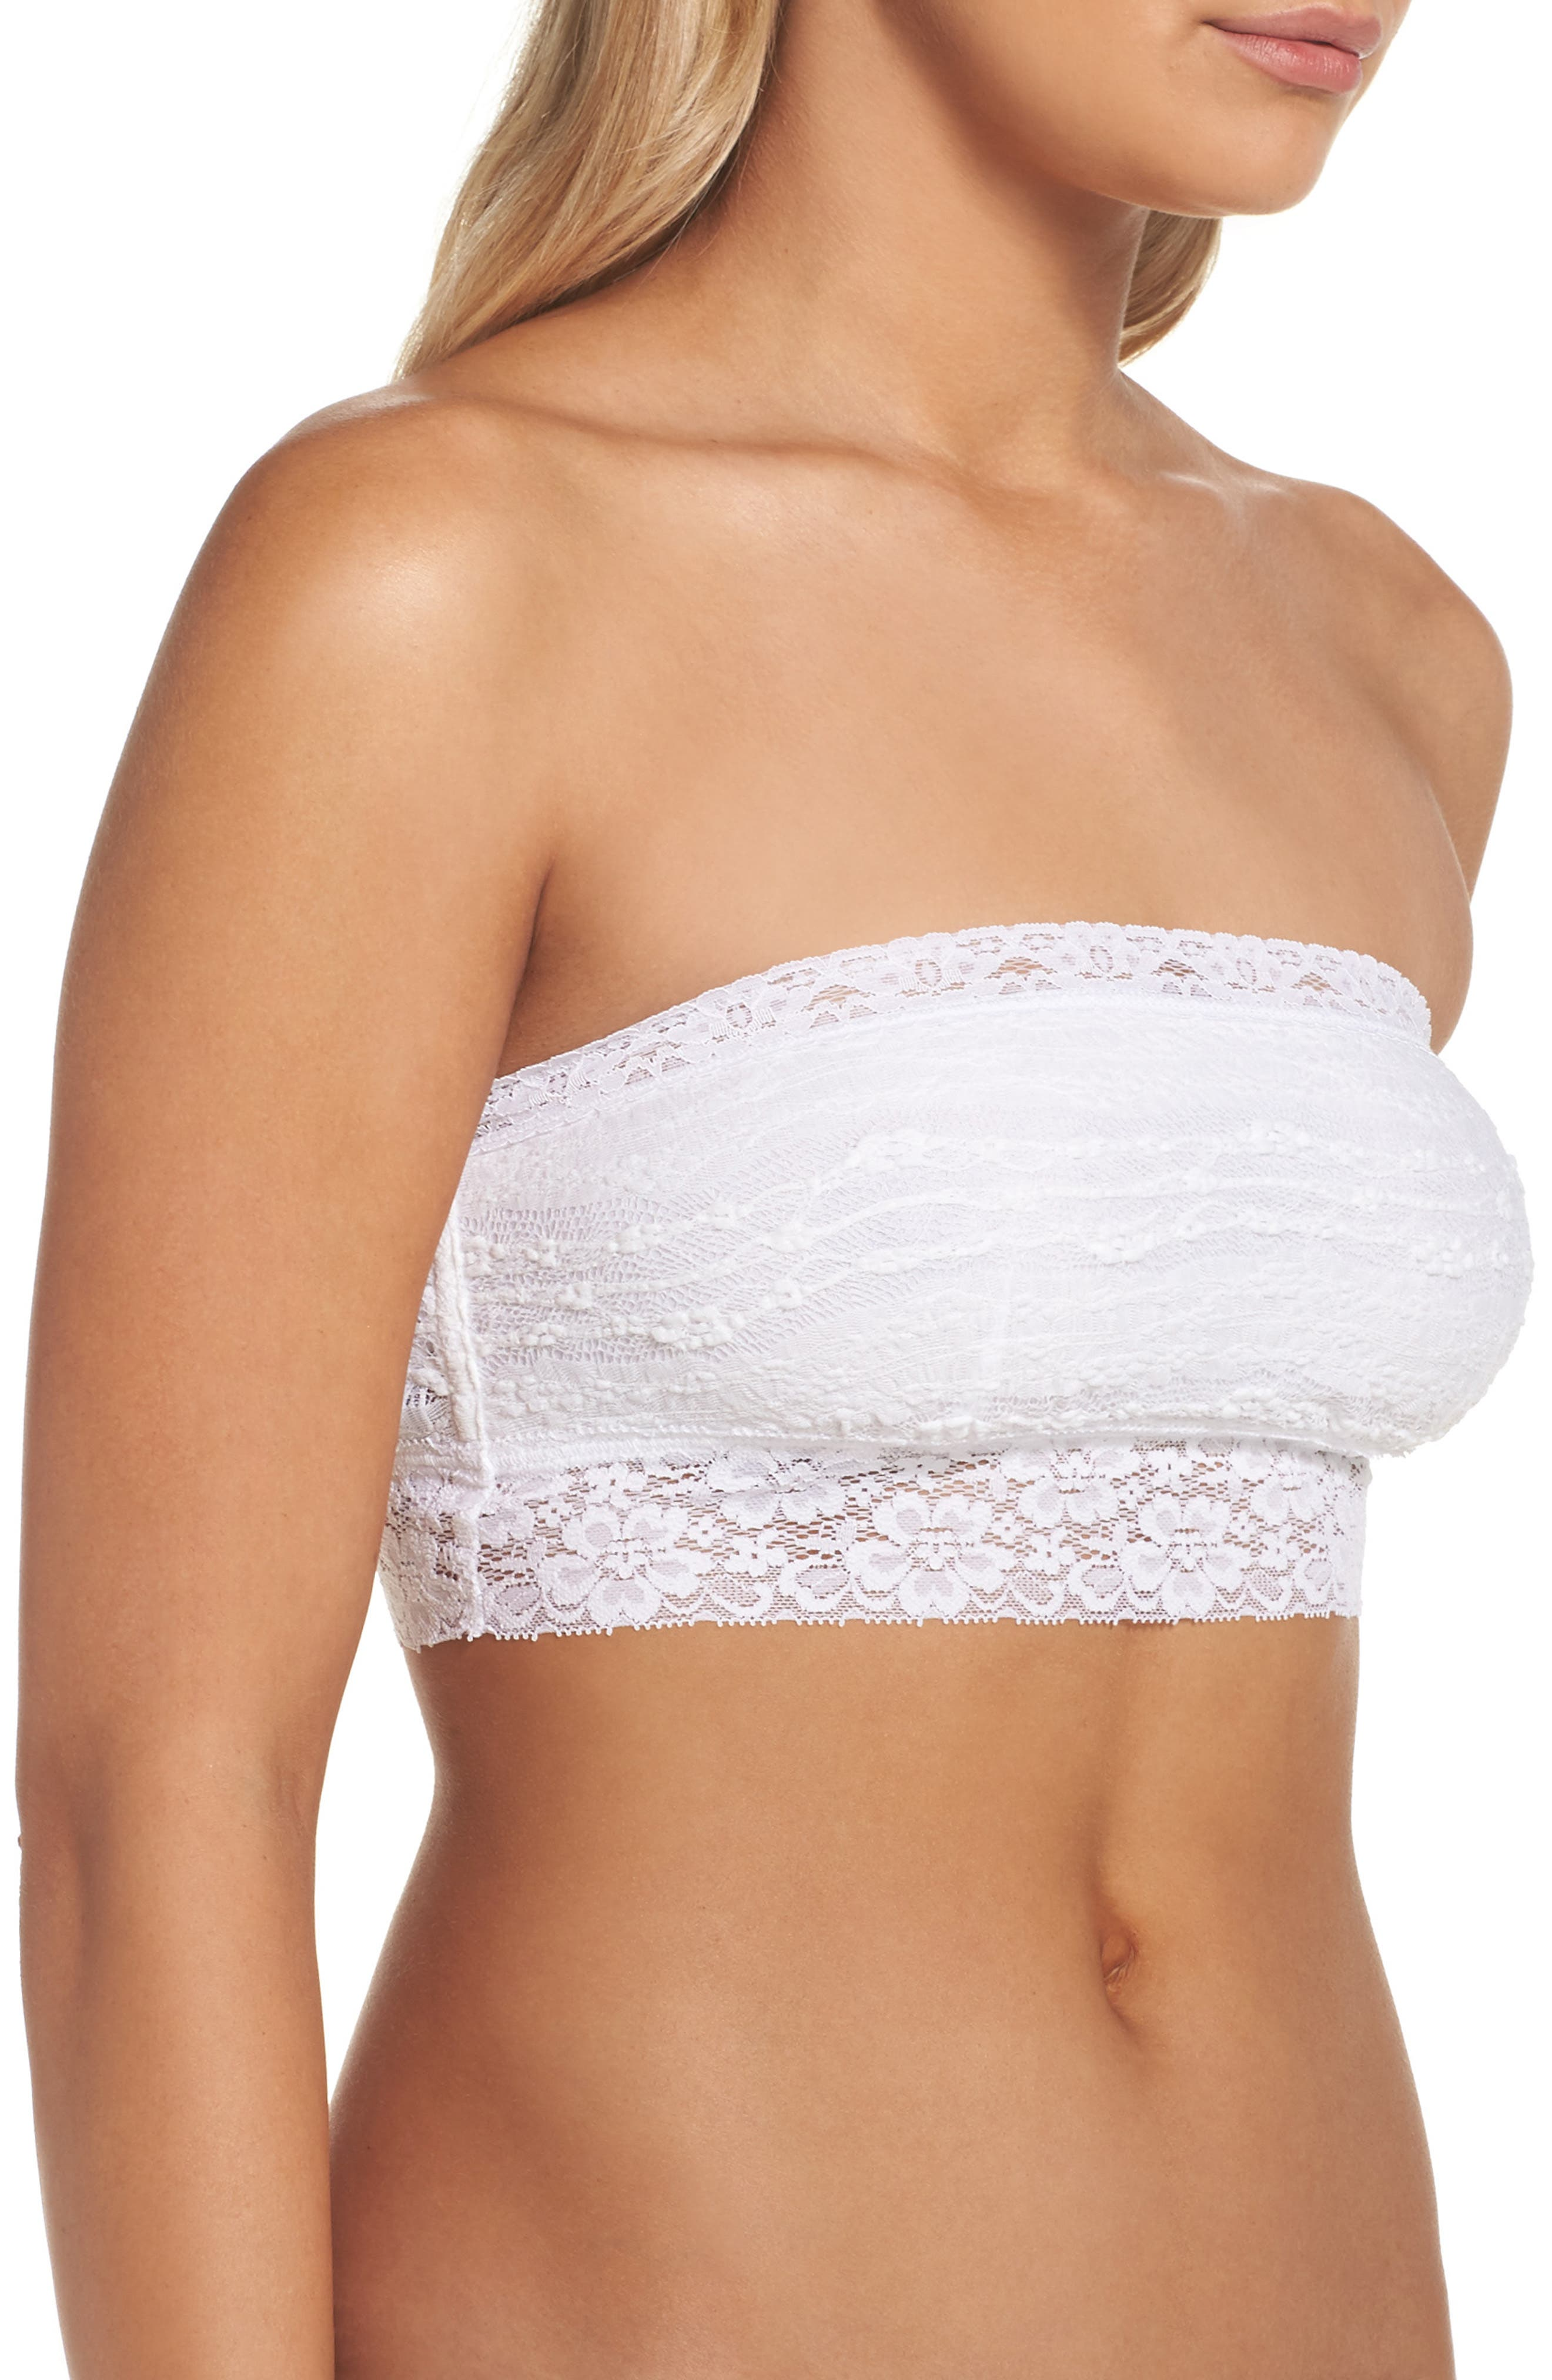 Intimately FP Lace Bandeau Bralette,                             Alternate thumbnail 4, color,                             WHITE